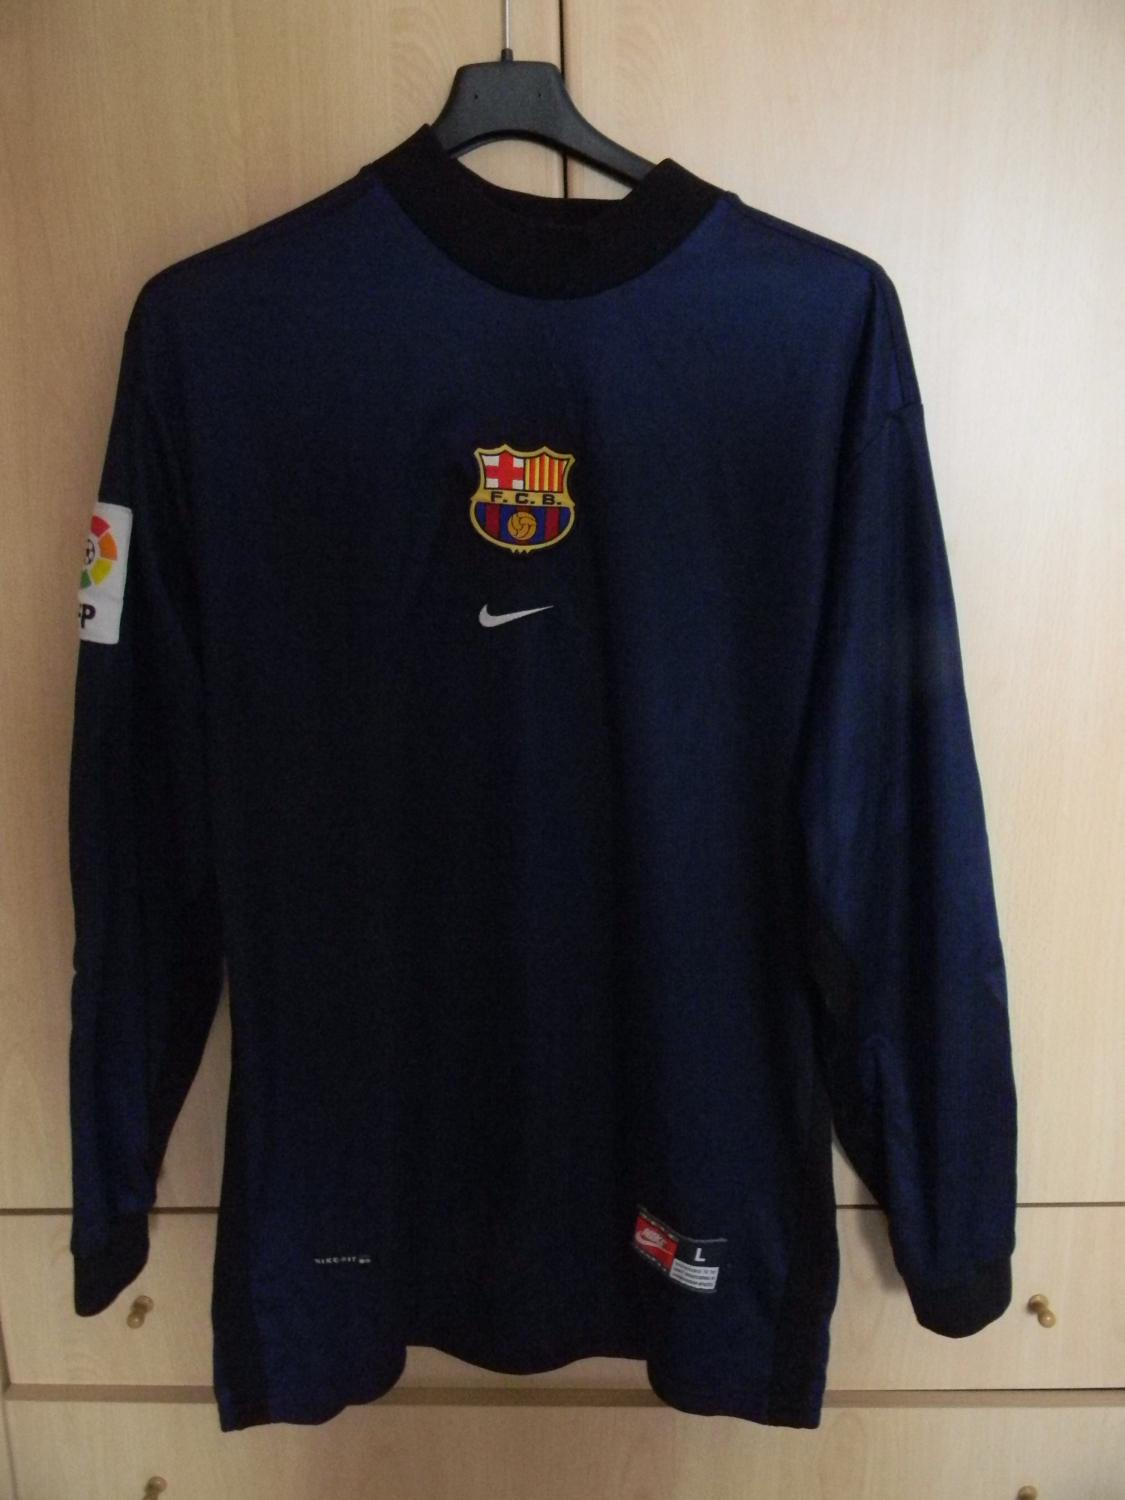 30f9d6ed593 Barcelona Goalkeeper Maillot de foot 2001 - 2002.